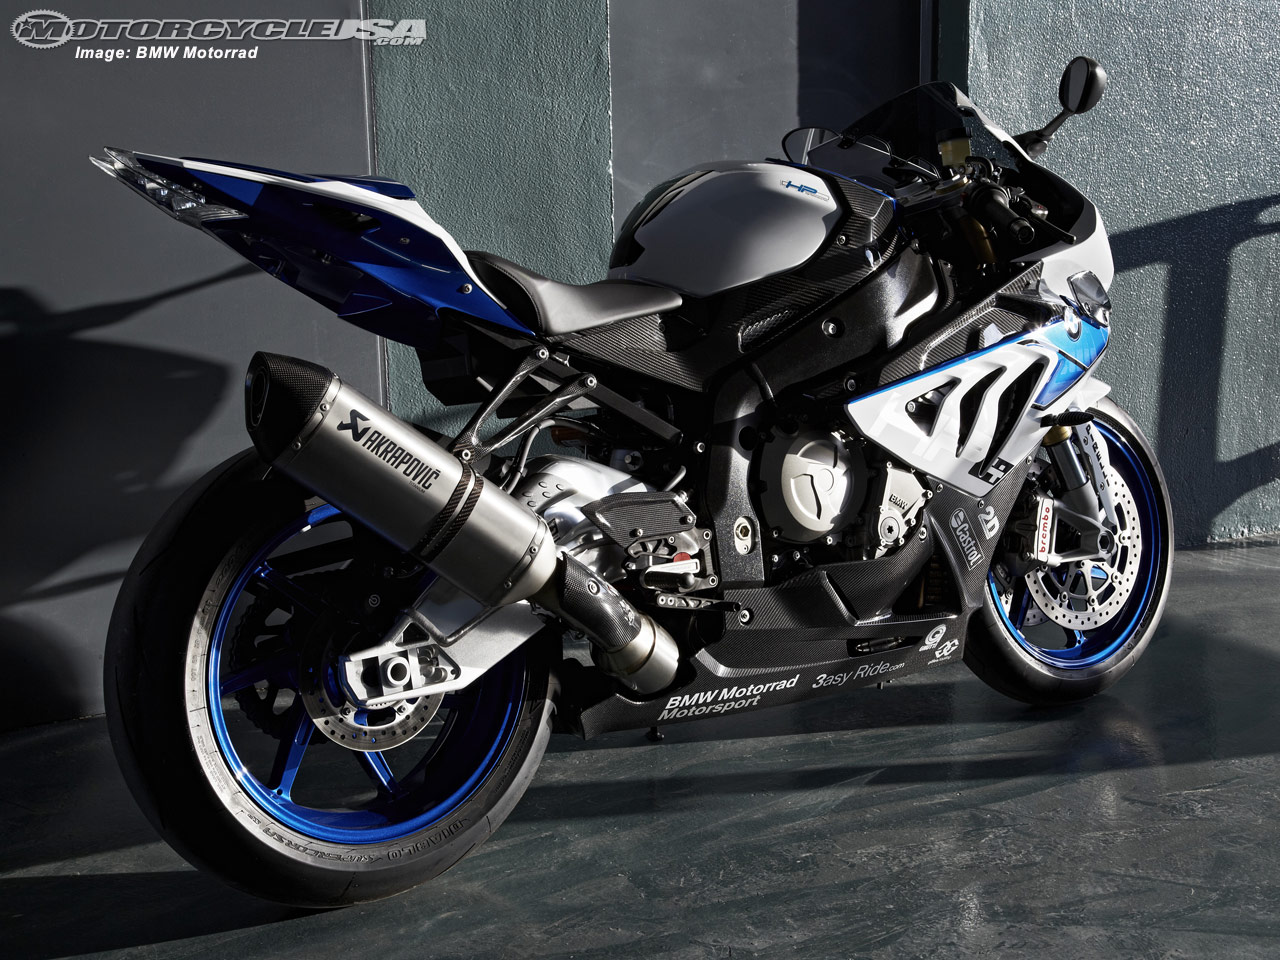 2013 BMW S1000RR HP4 First Ride Photos Motorcycle USA 1280x960